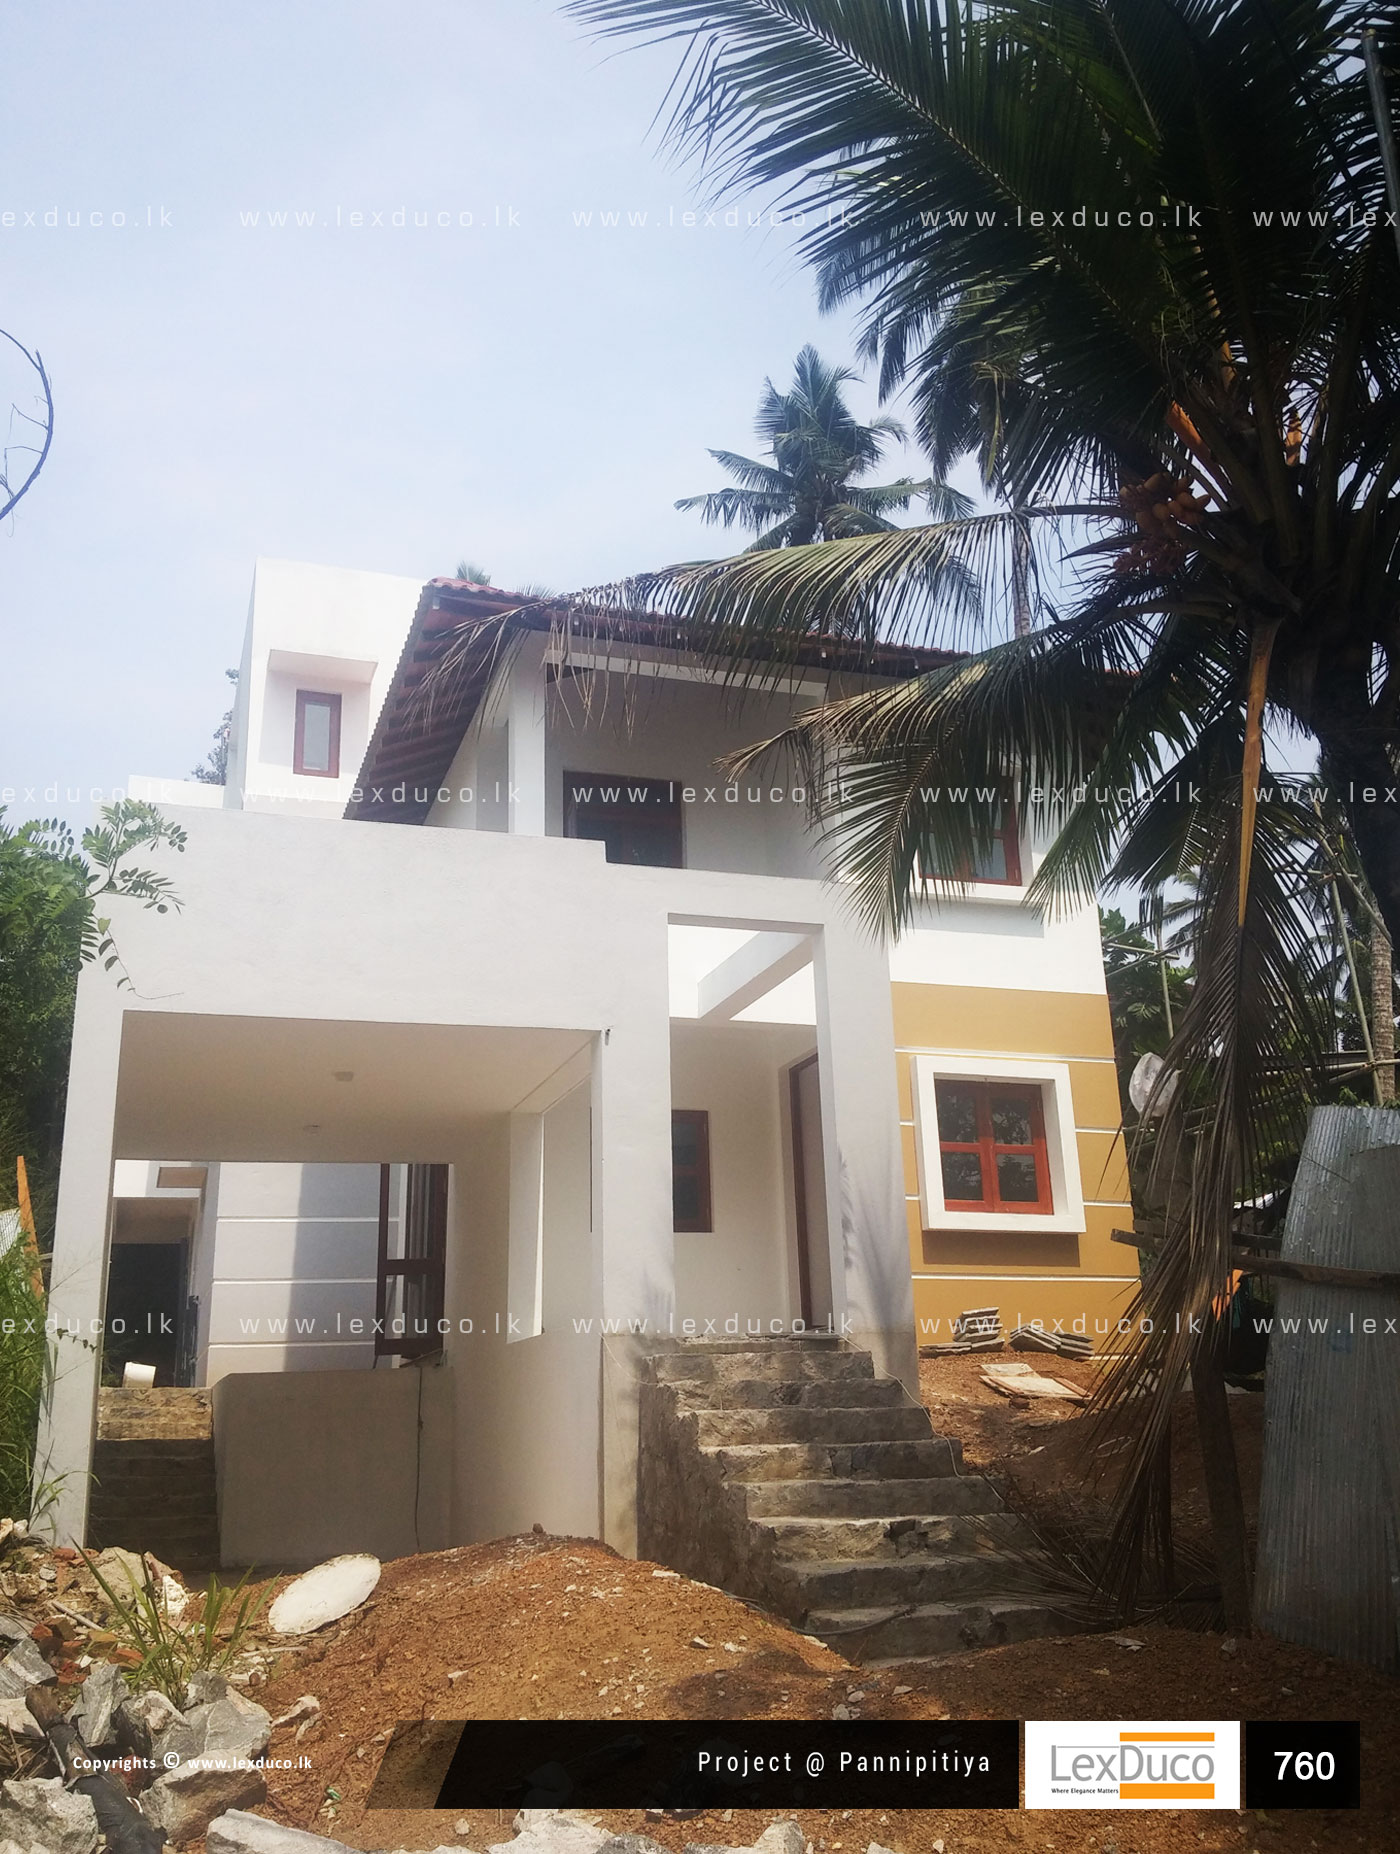 Residential Housing Project at Pannipitiya   Lex Duco